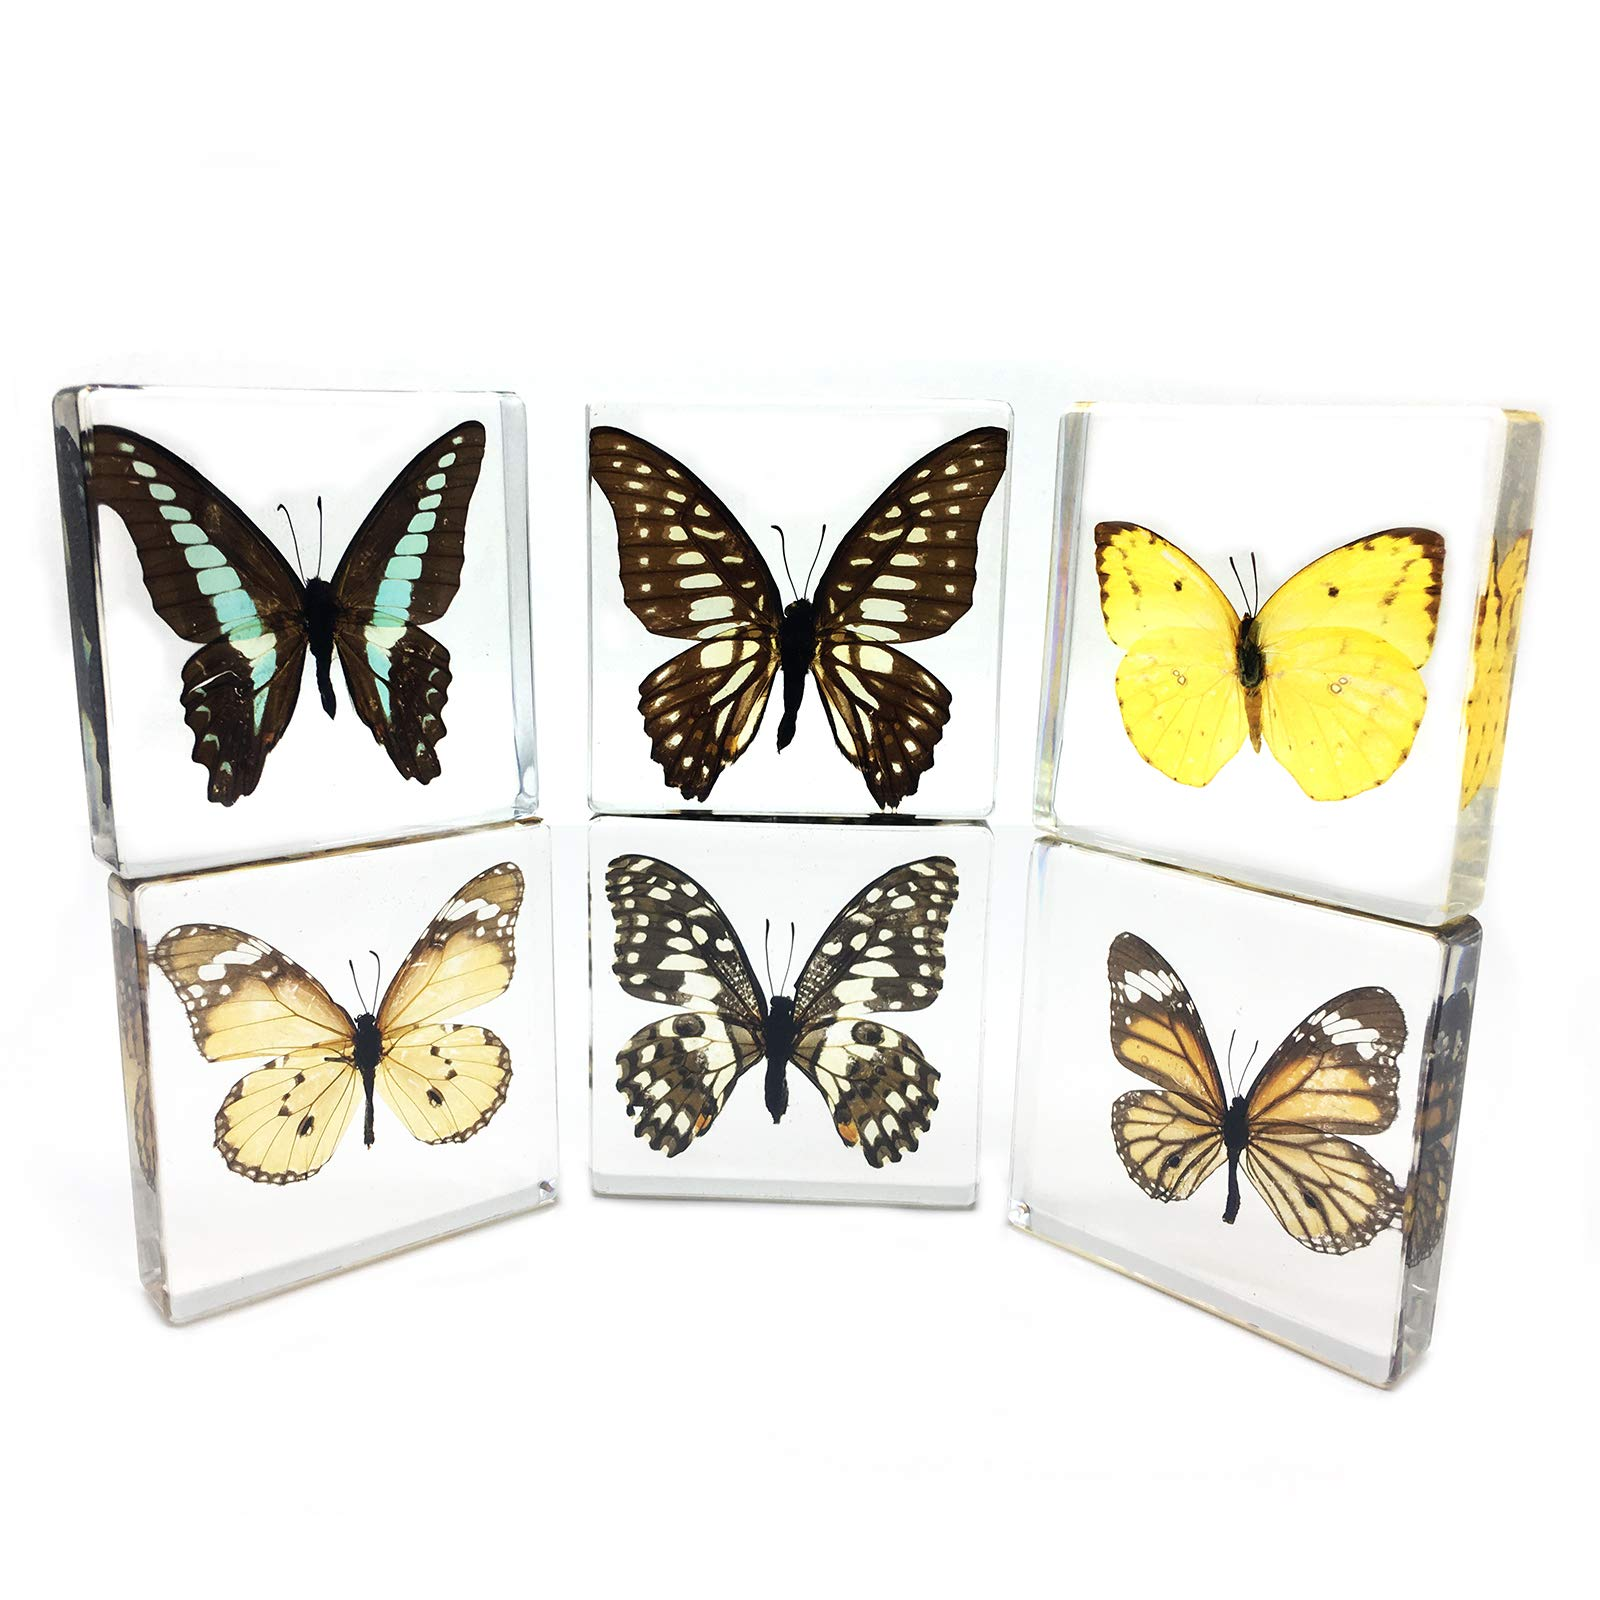 6 PCS Real Butterfly Specimen Specimens Paperweight Paperweights Collection Display (3x3x0.6'')